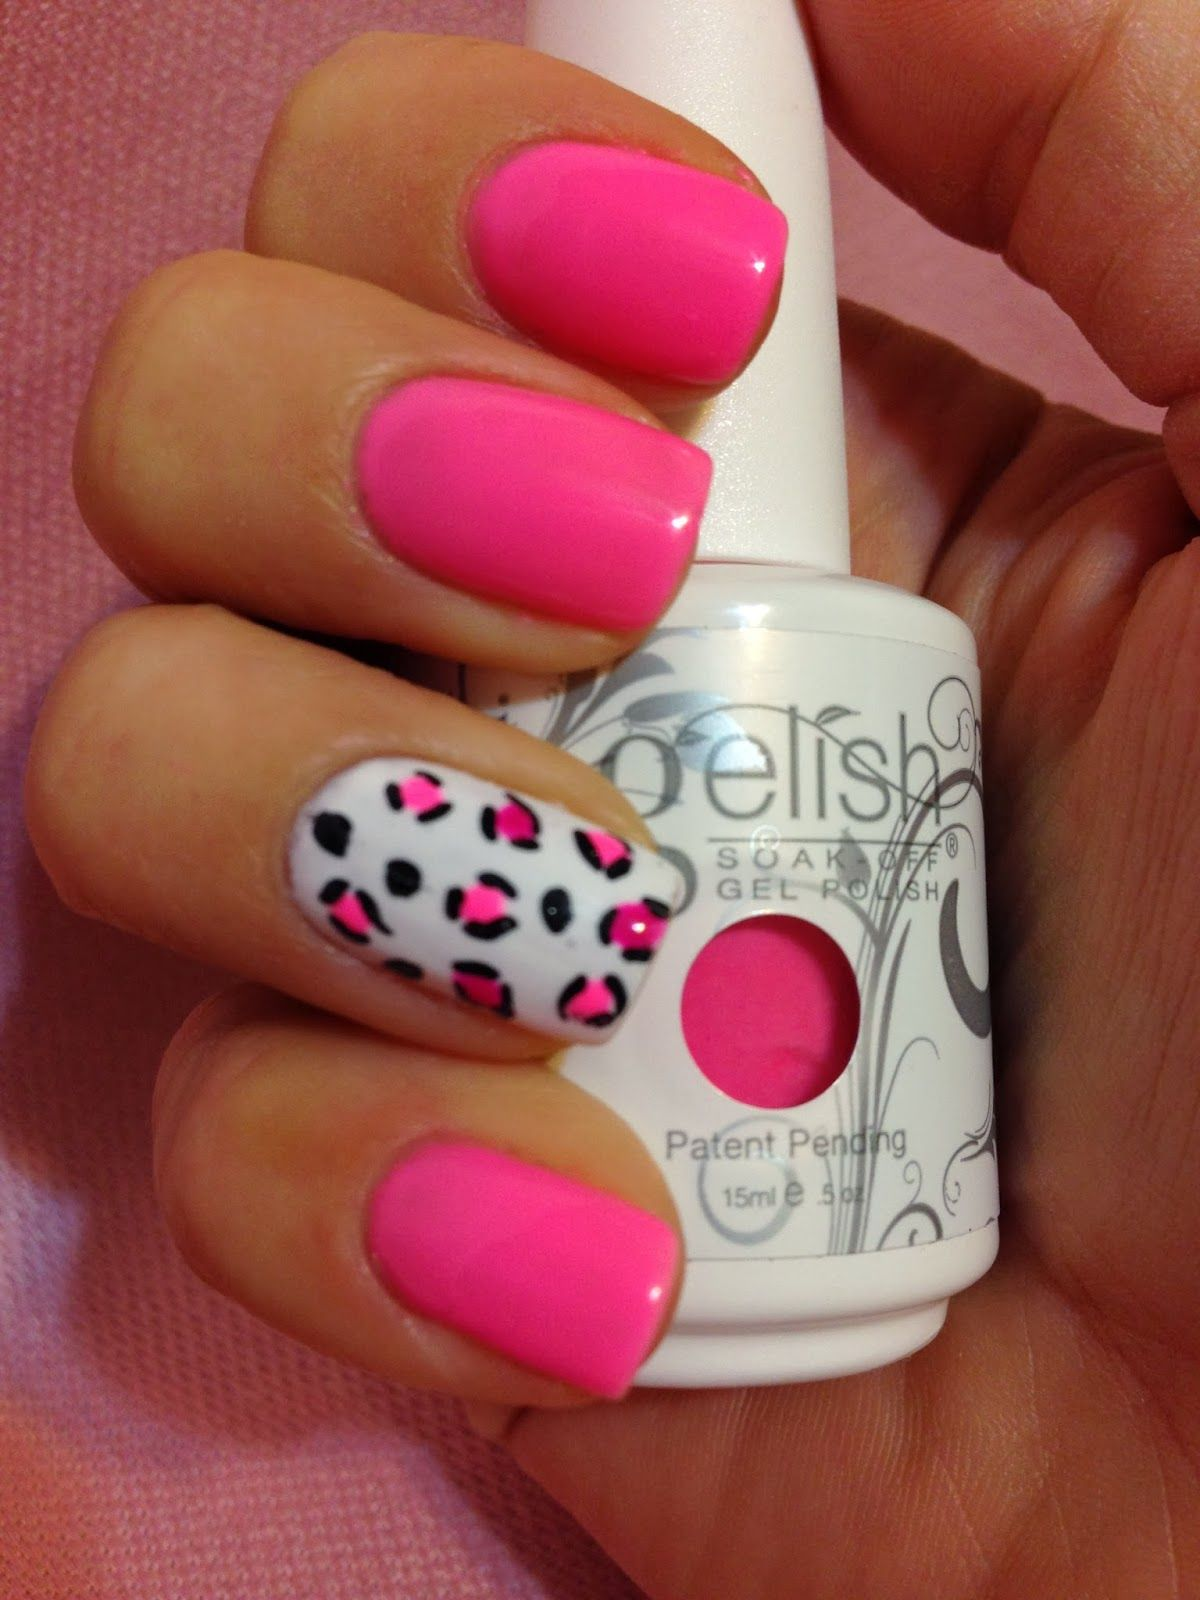 Gelish Make You Blink Pink (All about the glow collection) | Beauty ...